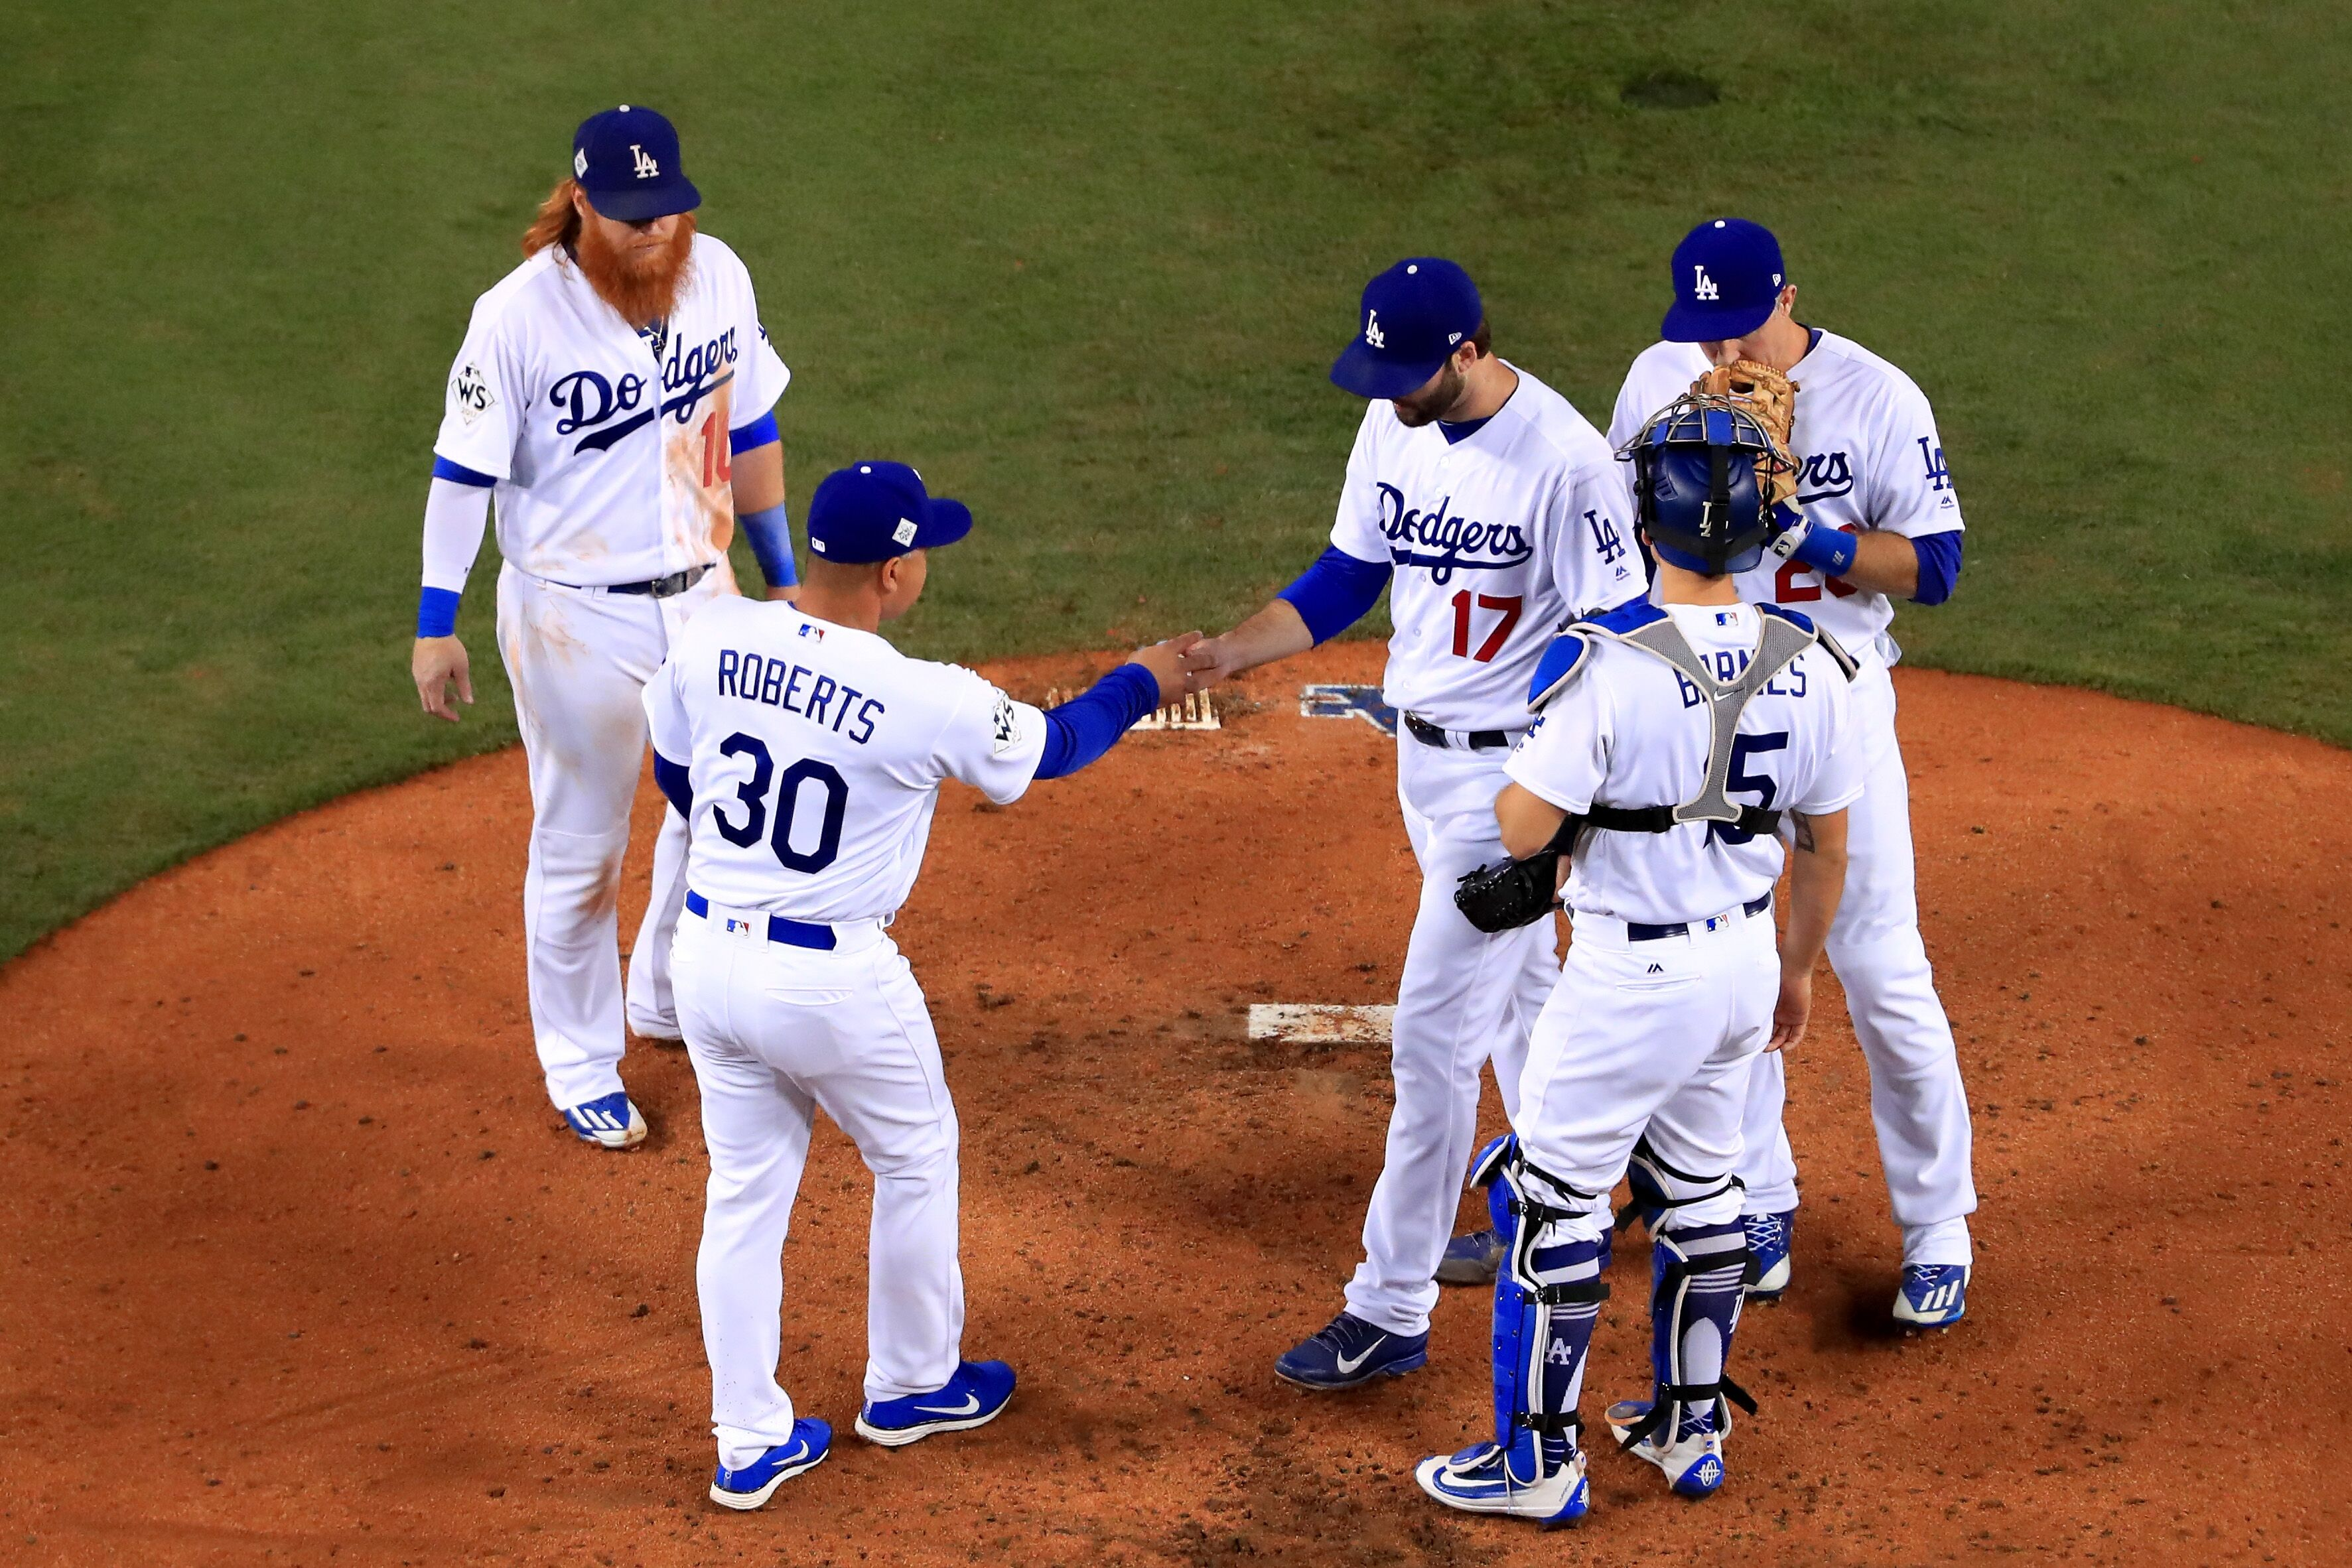 868797764-world-series-houston-astros-v-los-angeles-dodgers-game-six.jpg